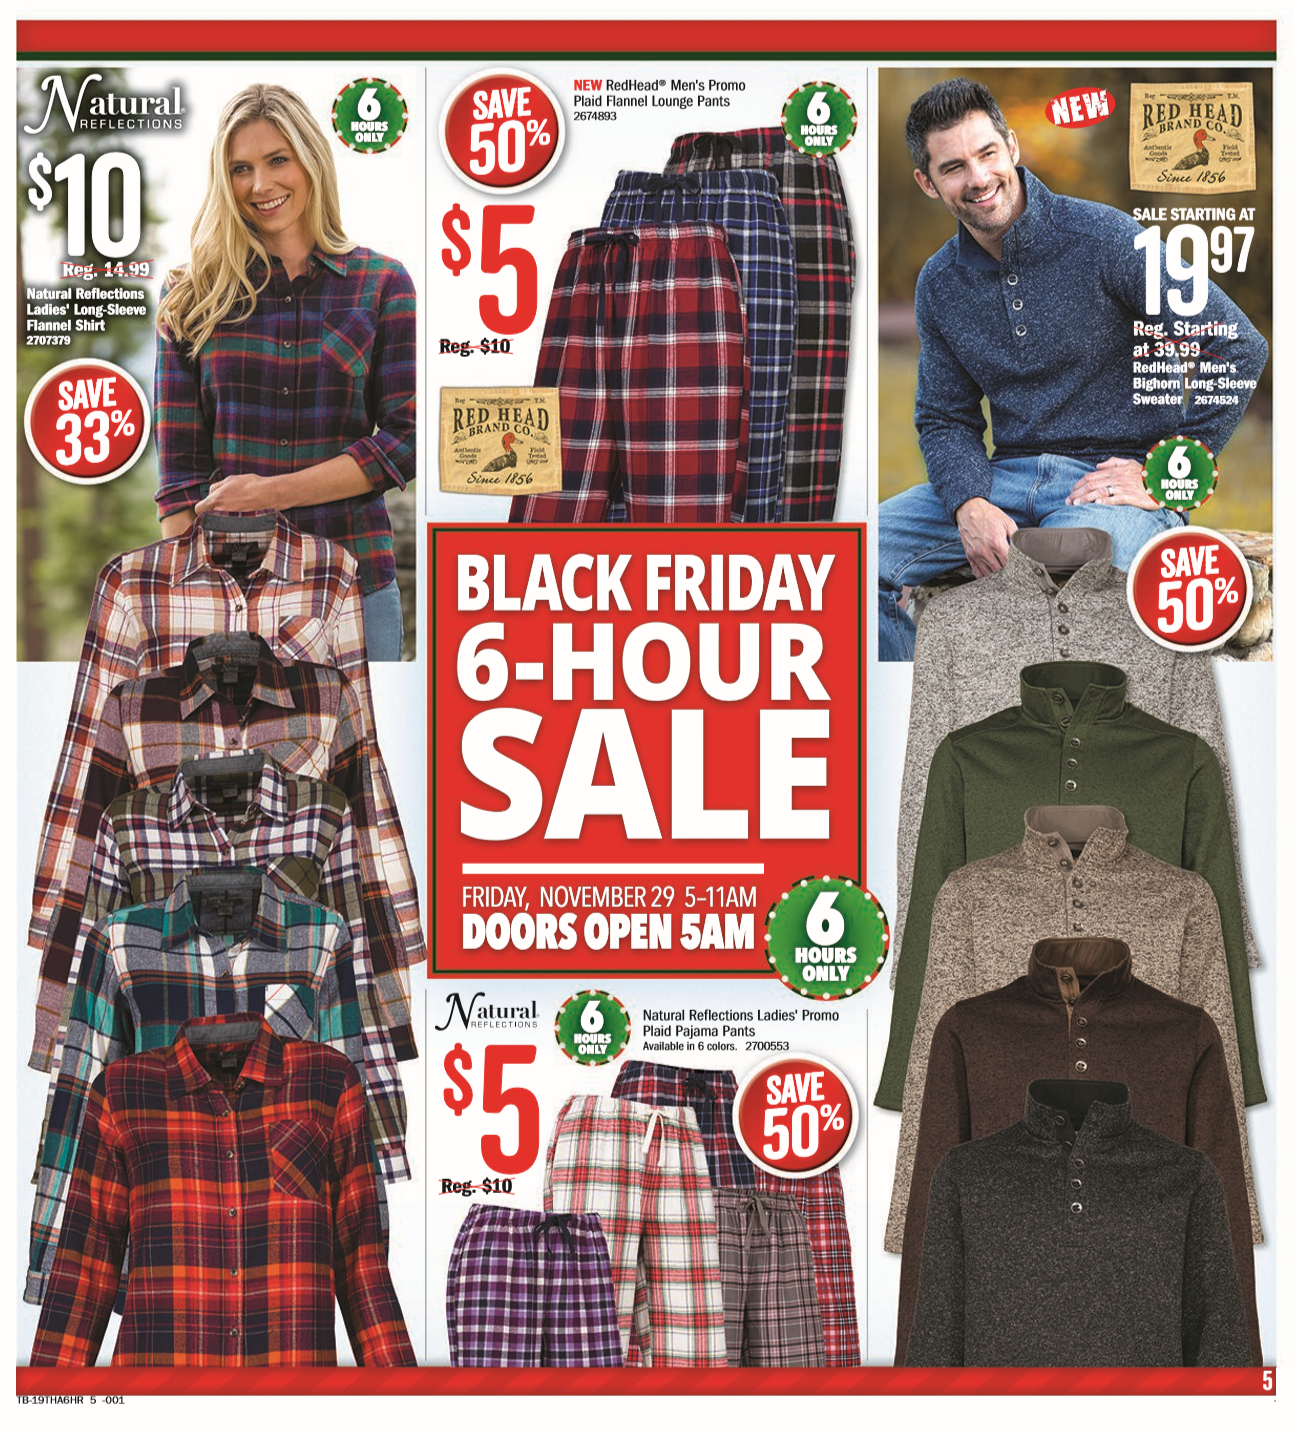 Bass Pro Shops Black Friday 2019 Ad